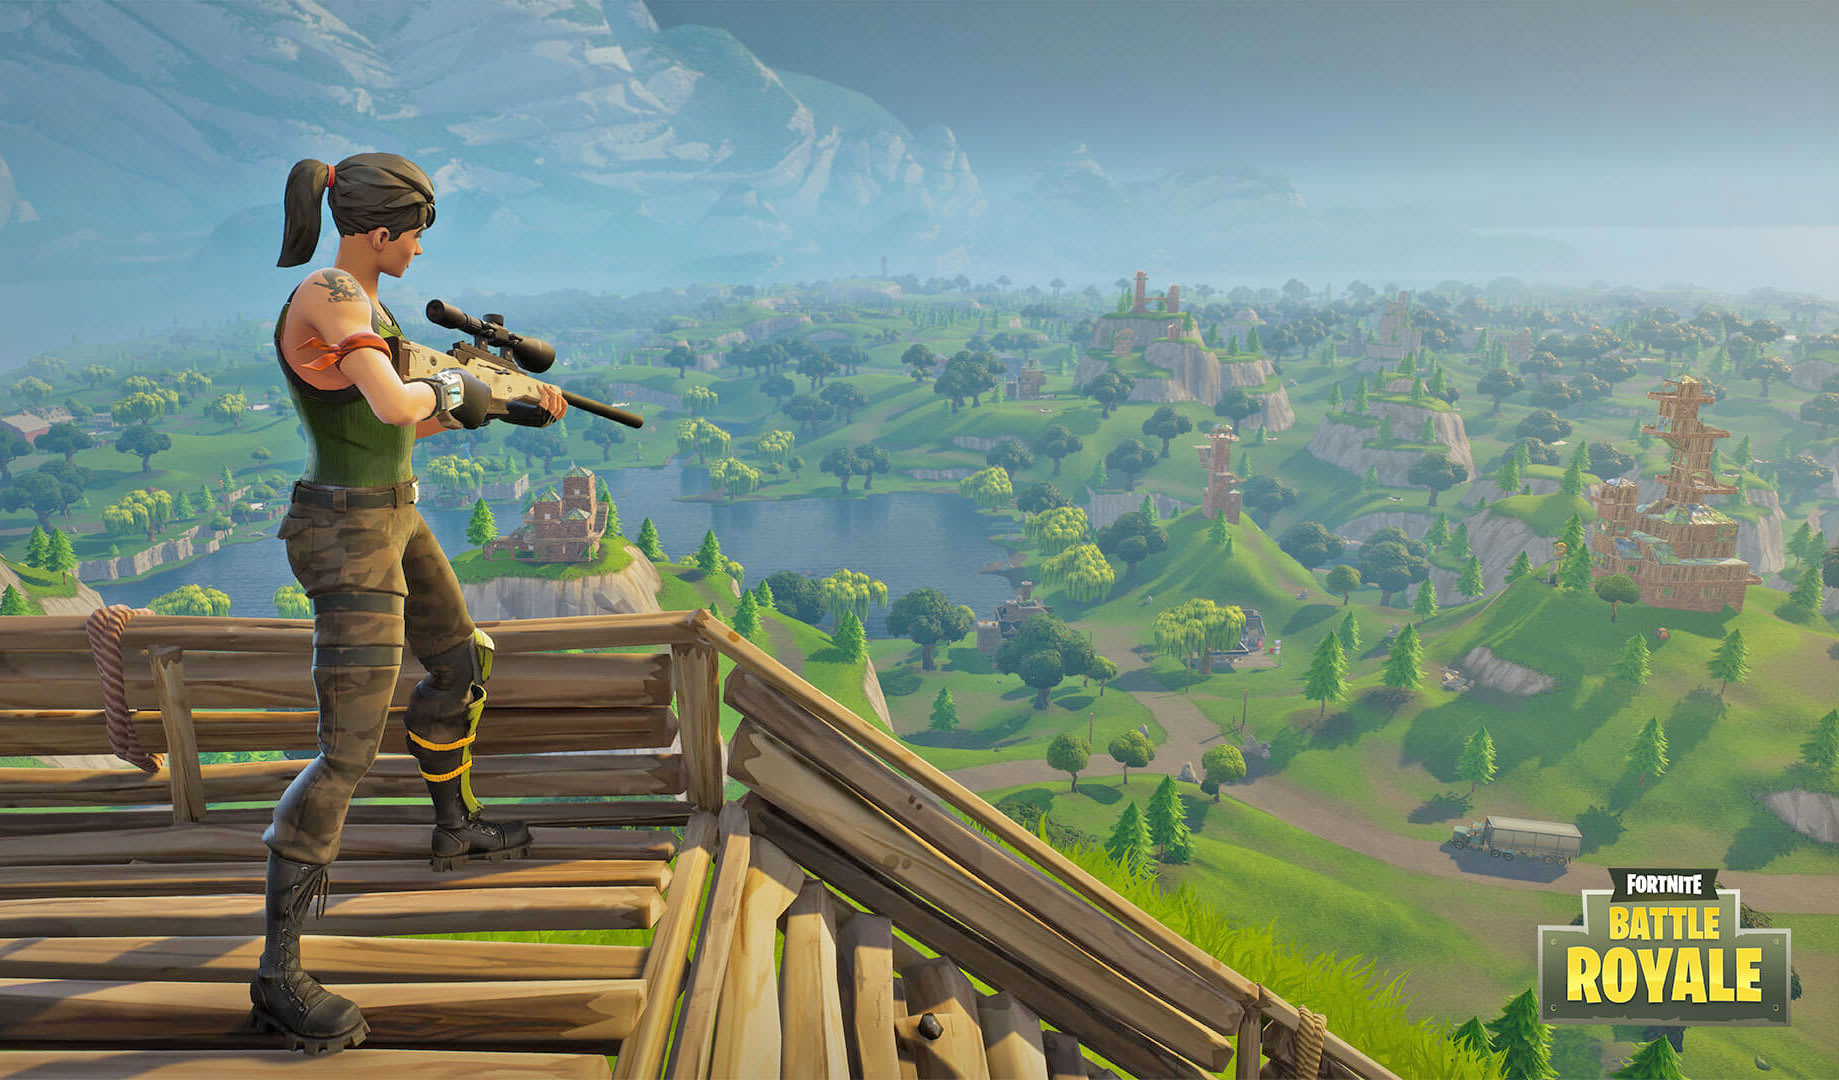 Fortnite' for Android may launch on Samsung's app store